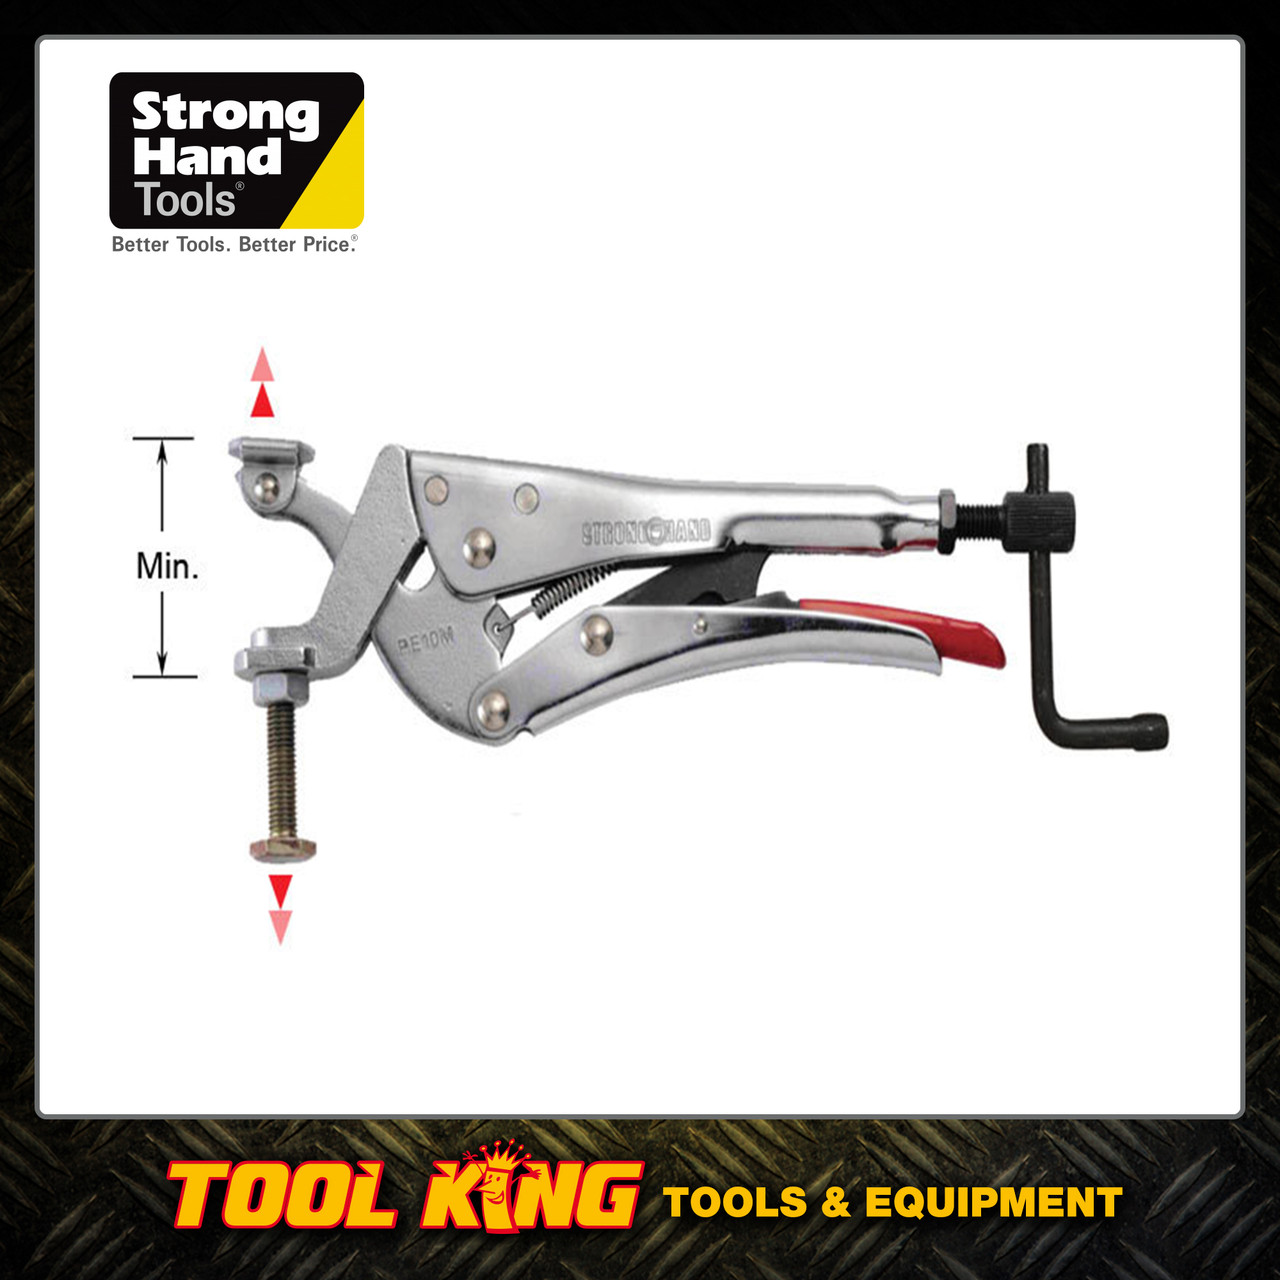 Expanding locking pliers Stronghand